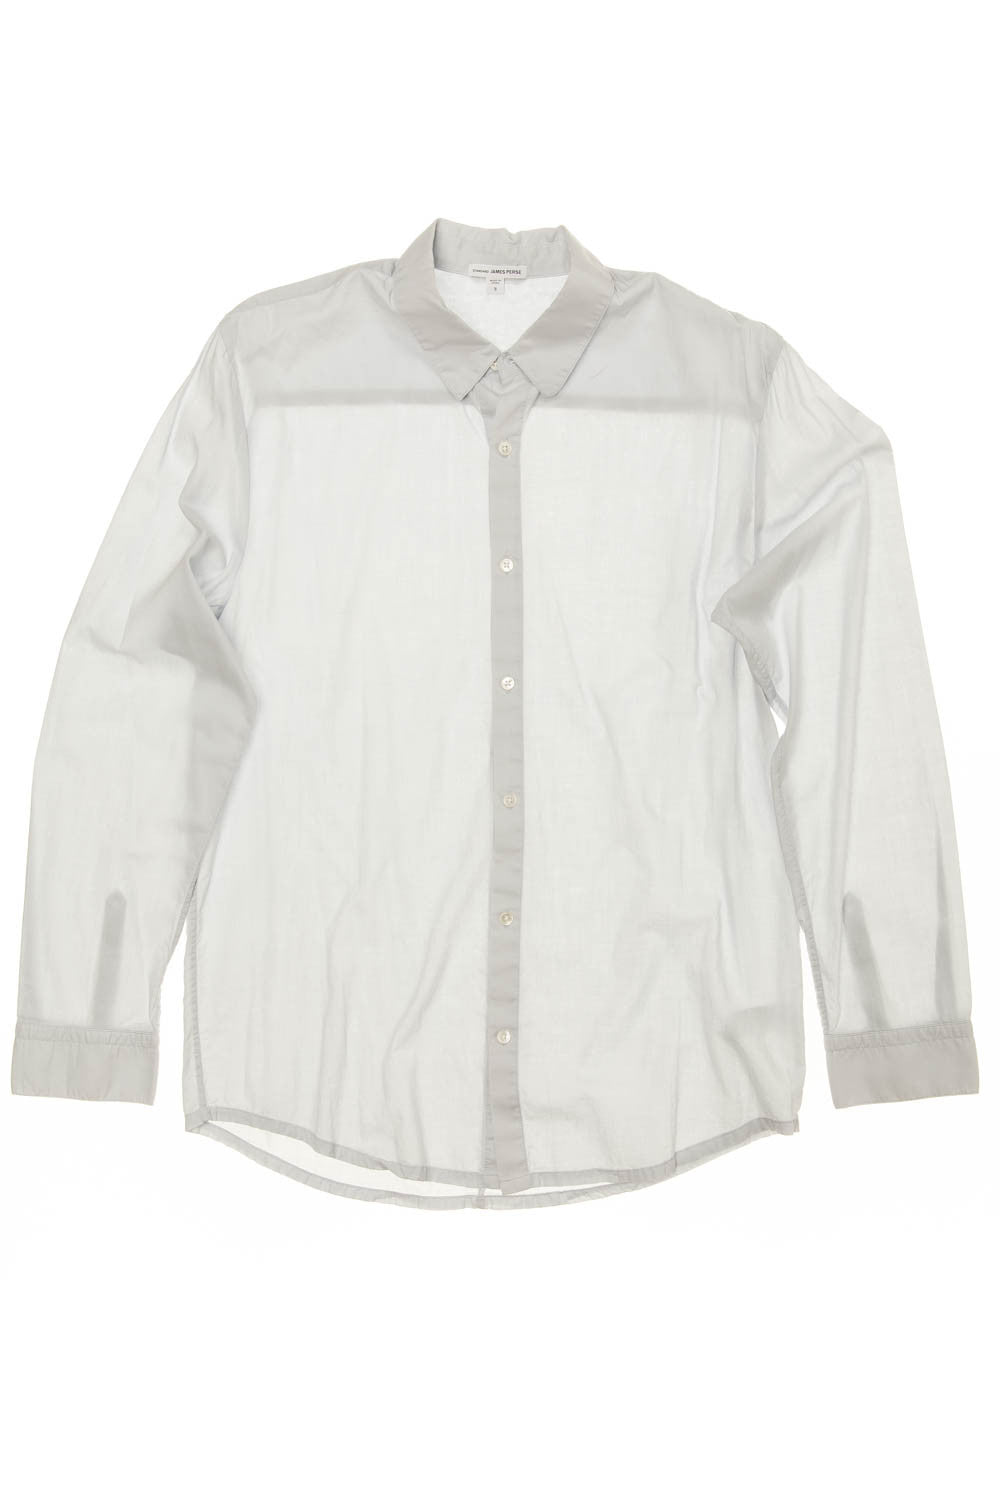 James Perse - Light Blue Button Down - US 3